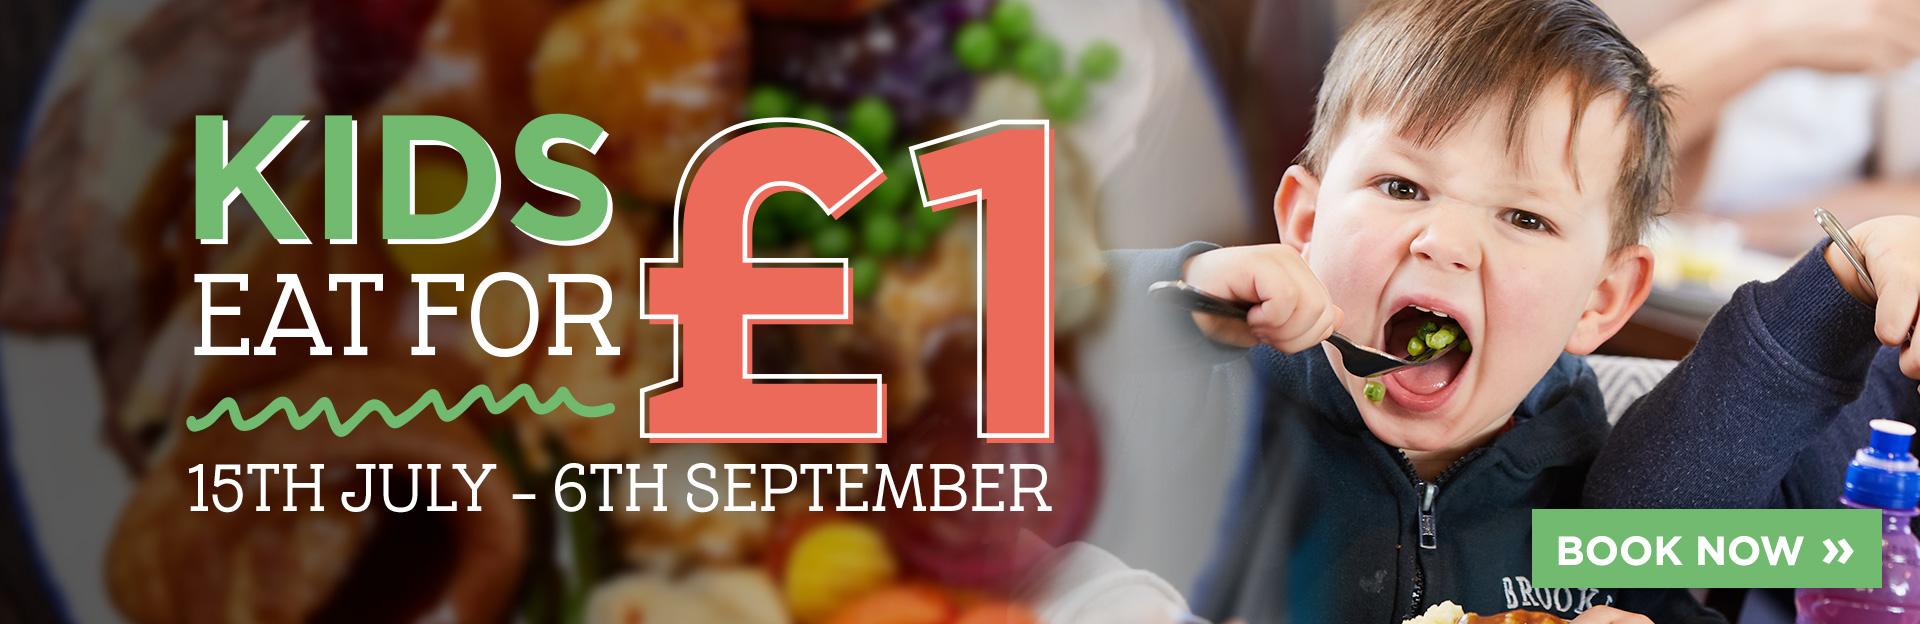 Kids eat for £1 at The Plume of Feathers